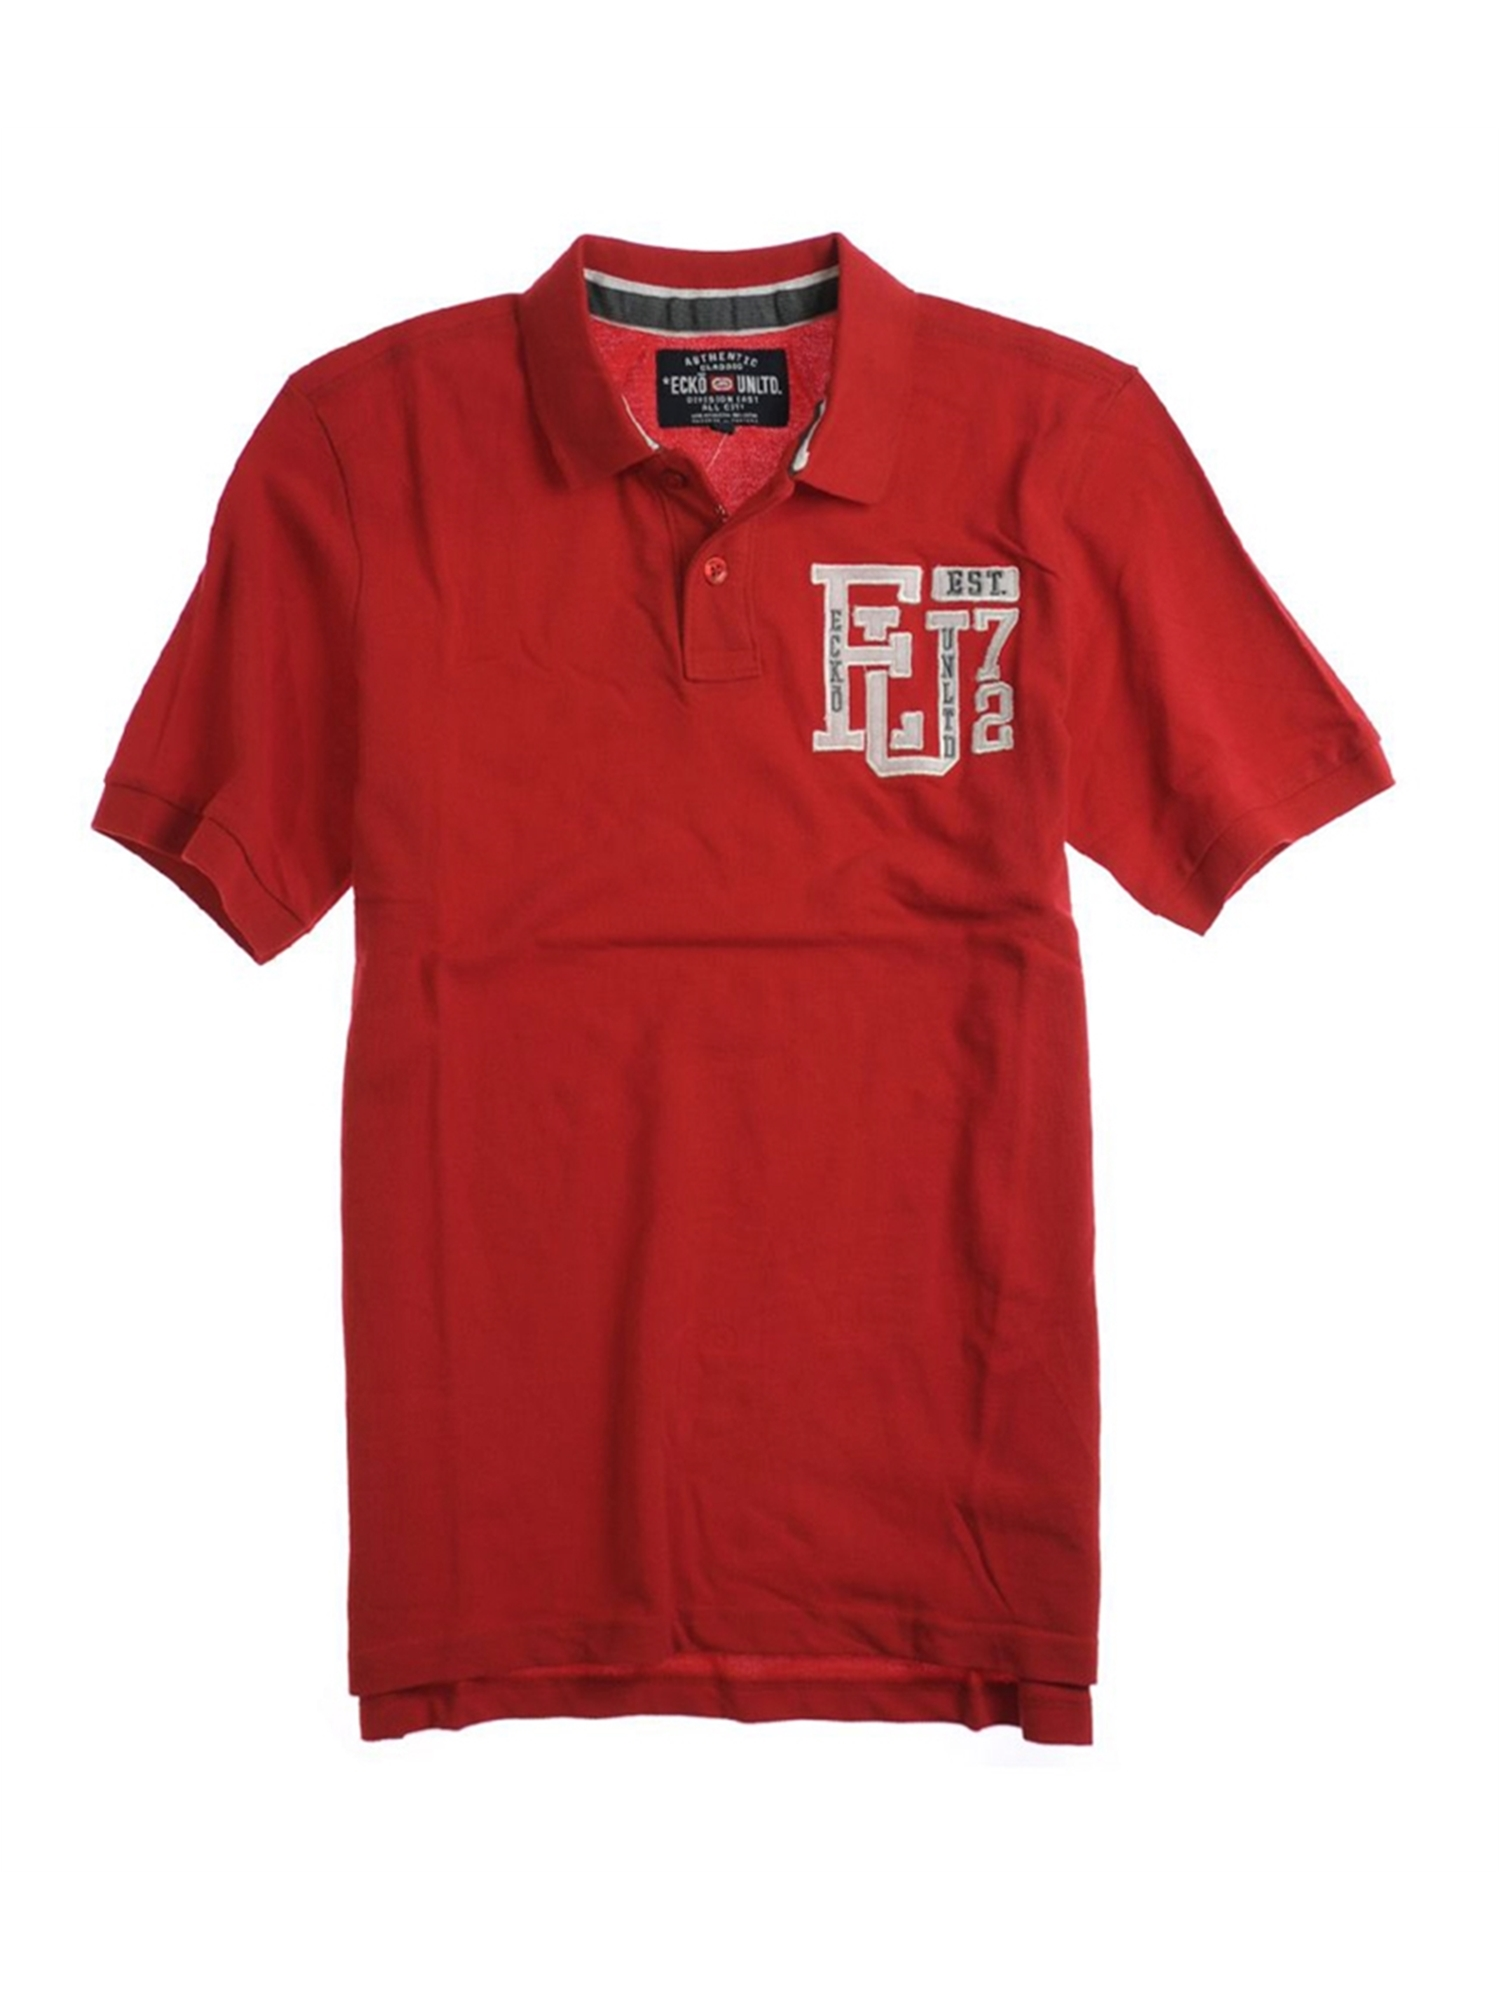 Ecko Unltd. Mens Left Chest Eu 72 Rugby Polo Shirt   Walmart.com